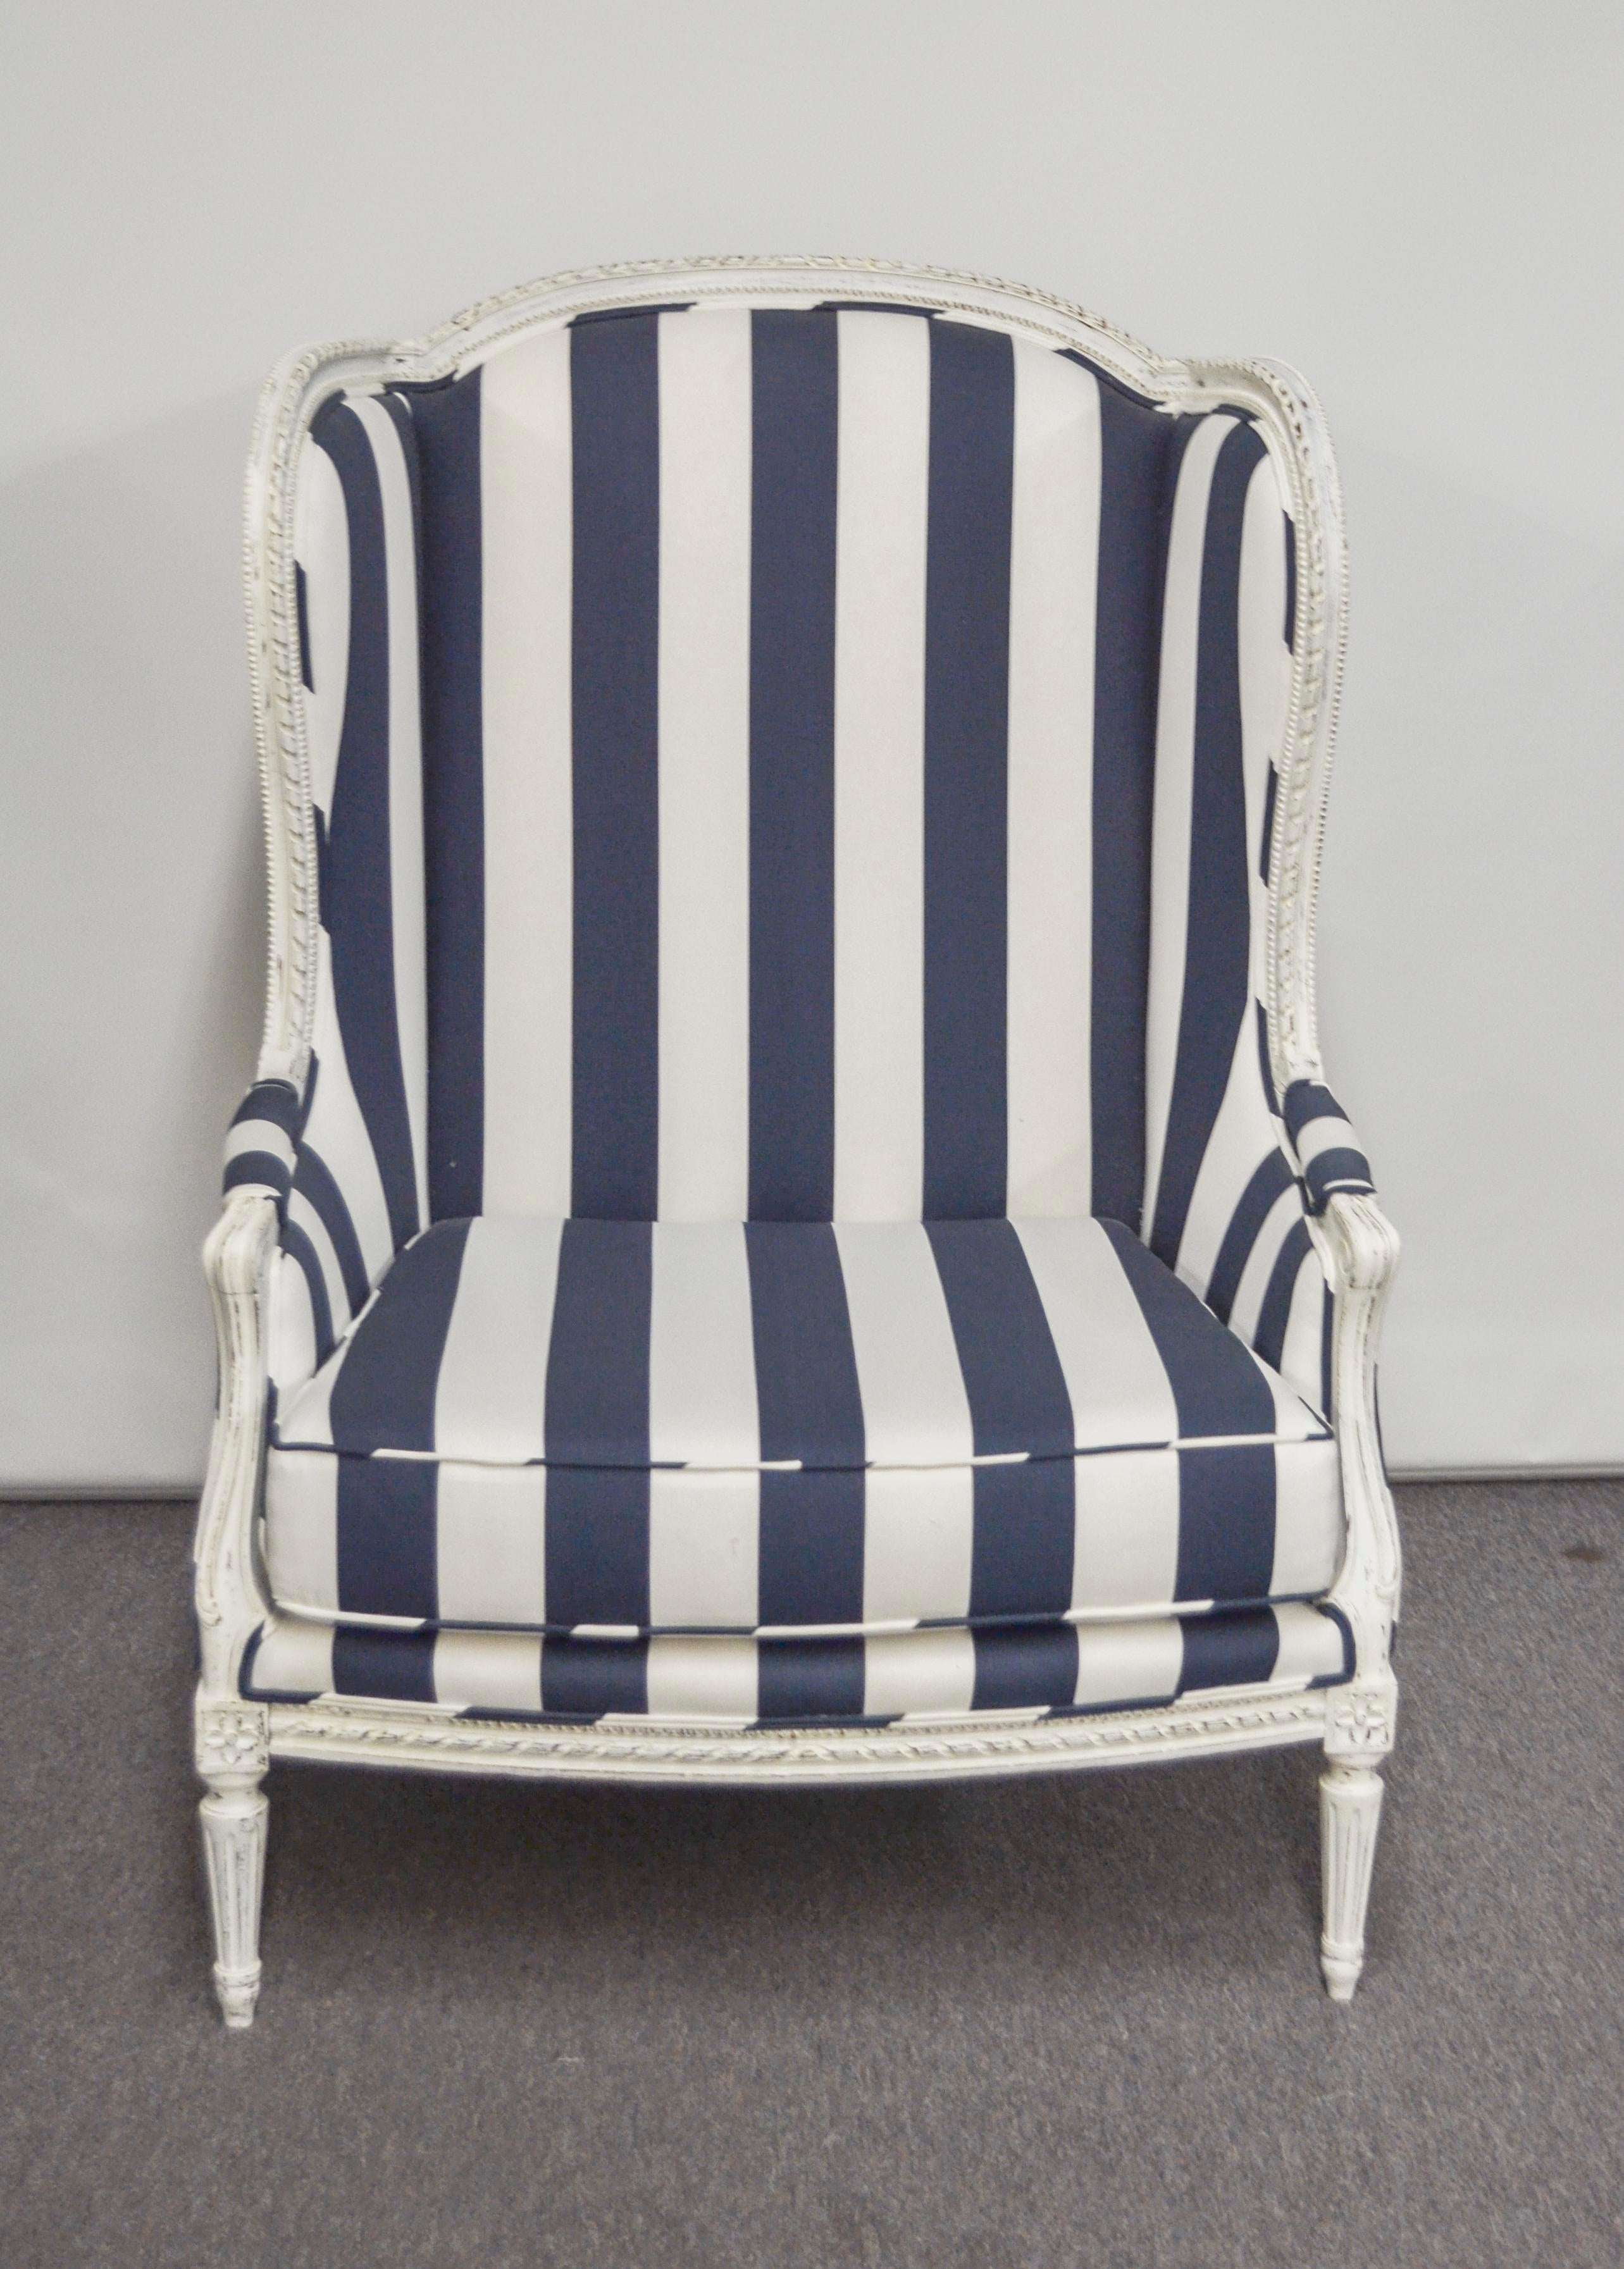 Cotton Nautical Wide Navy And White Stripe Wingback Chair For Sale   Image  7 Of 7